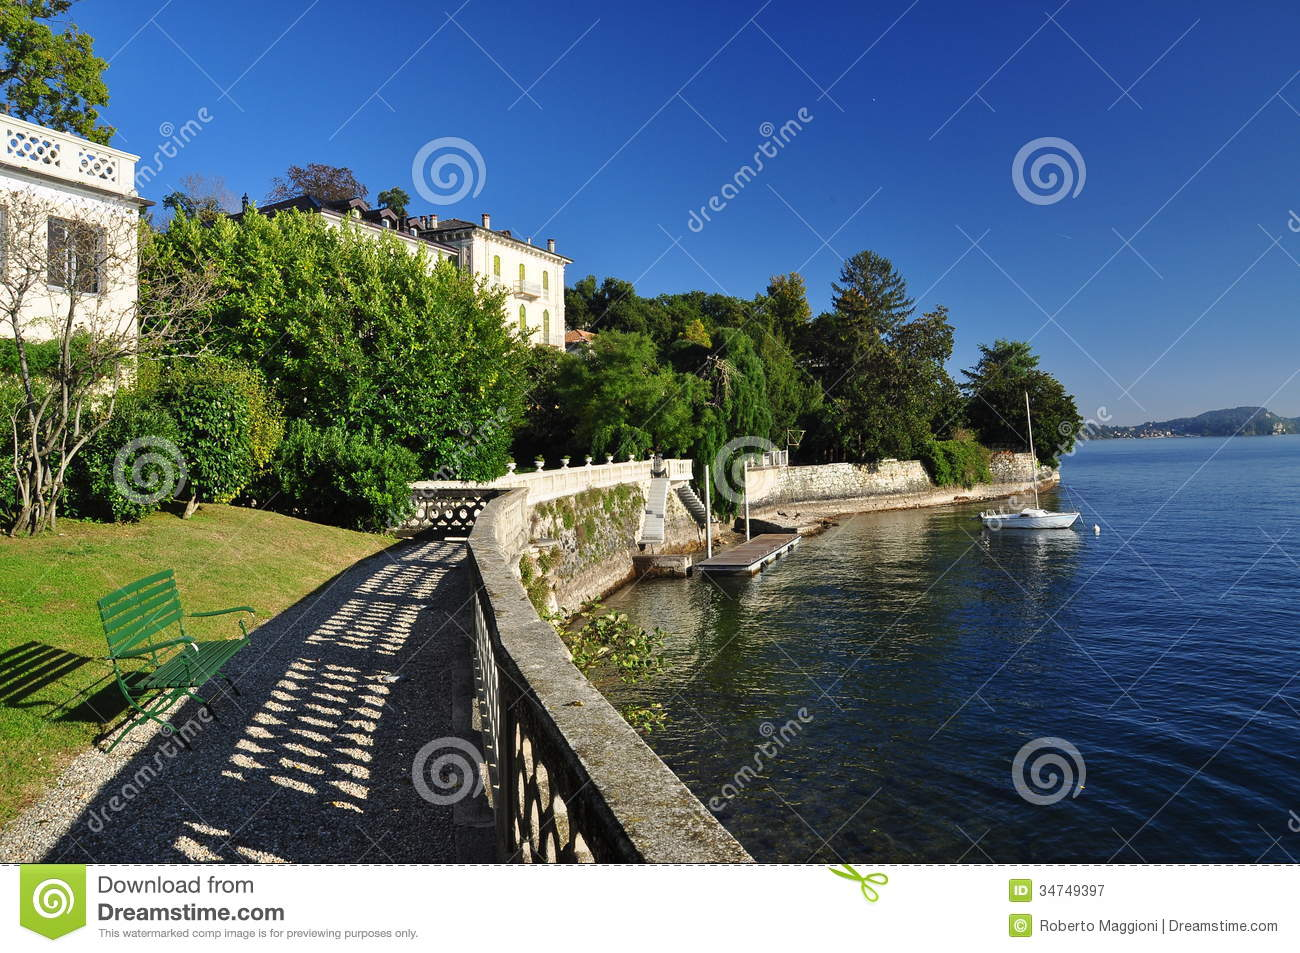 Verbania Pallanza, Lake Maggiore, Italy Royalty Free Stock Images.